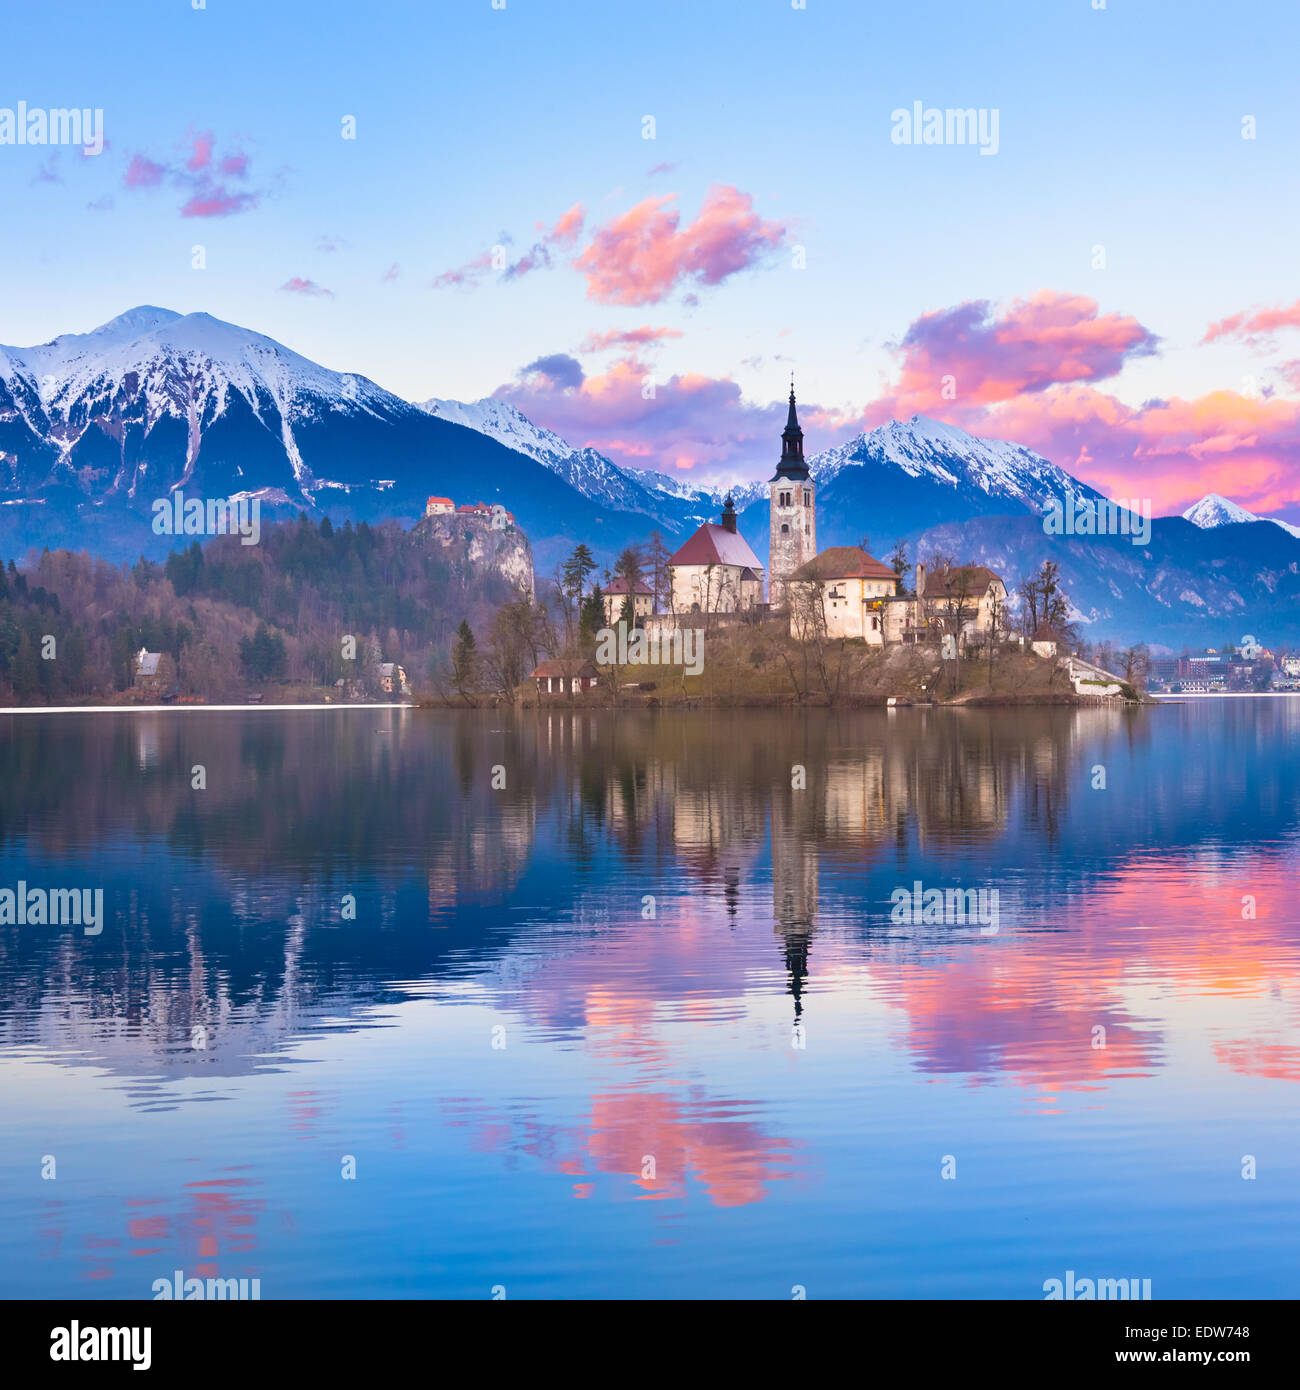 Bled in sunset, Slovenia, Europe. - Stock Image